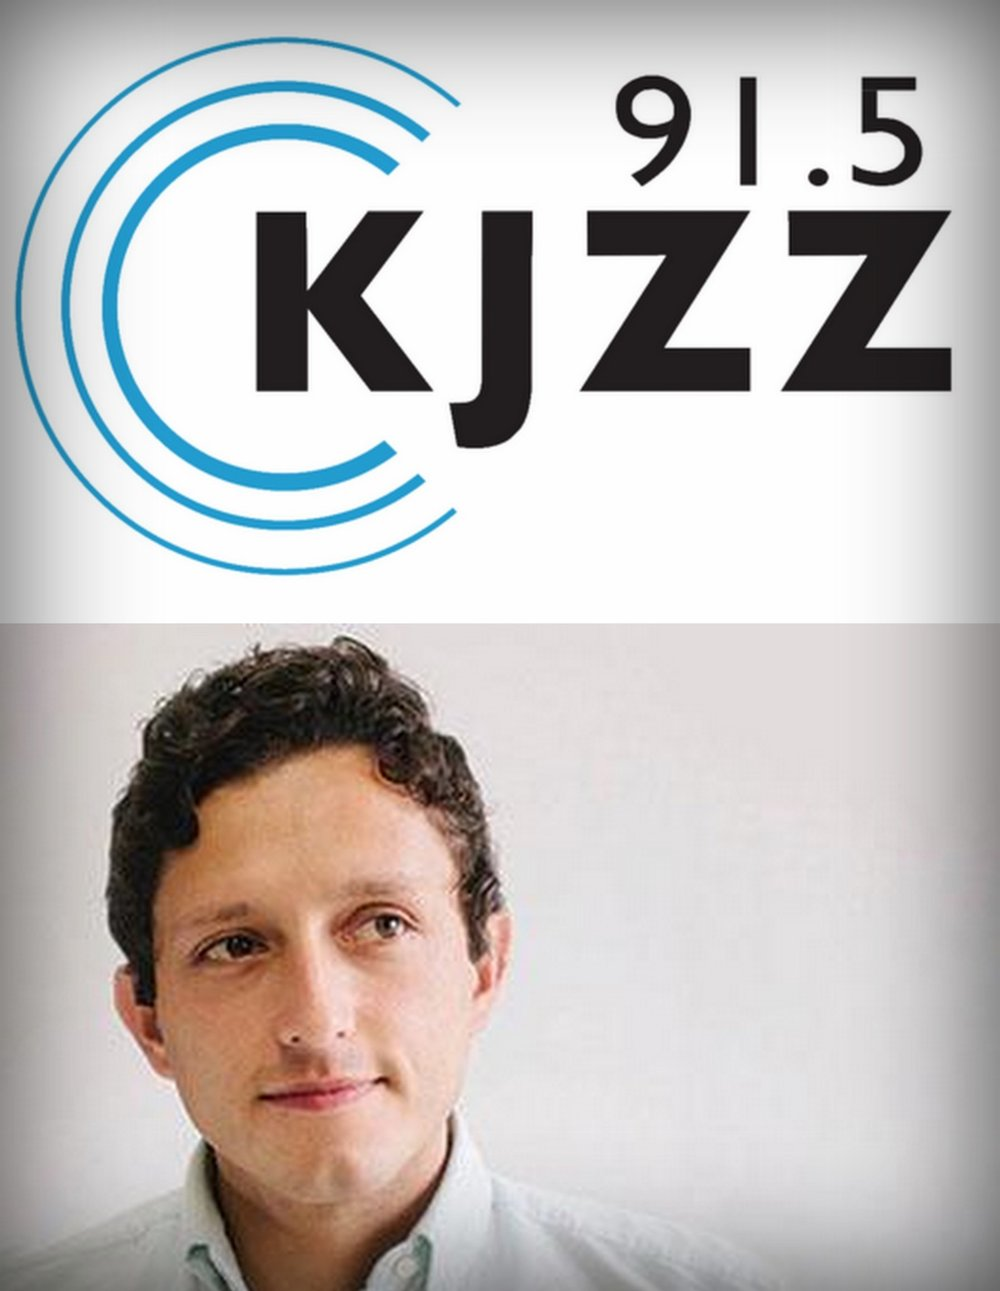 KJZZ 91.5FM - RADIO INTERVIEW (2017)With U.S. Secretary of State Rex Tillerson visiting the region to mediate the Gulf diplomatic crisis, Kamahl spoke to Jorge Valencia from KJZZ 91.5FM in Phoenix, Arizona about the impact of the crisis on Al Jazeera.